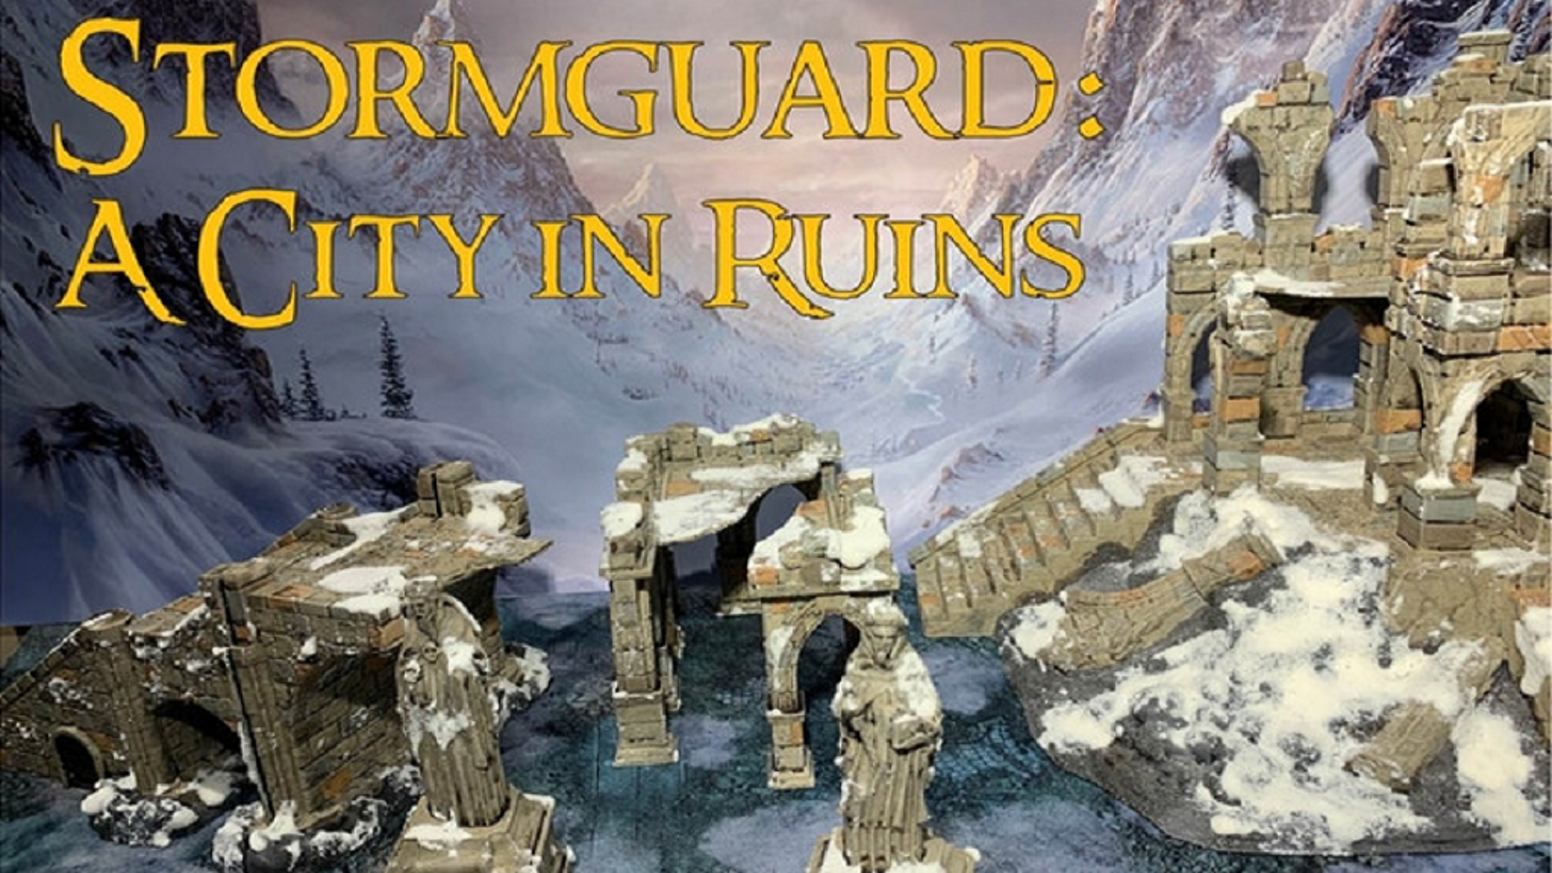 Stormguard: 3D printable Terrain for RPG and Wargames by M  Chabot